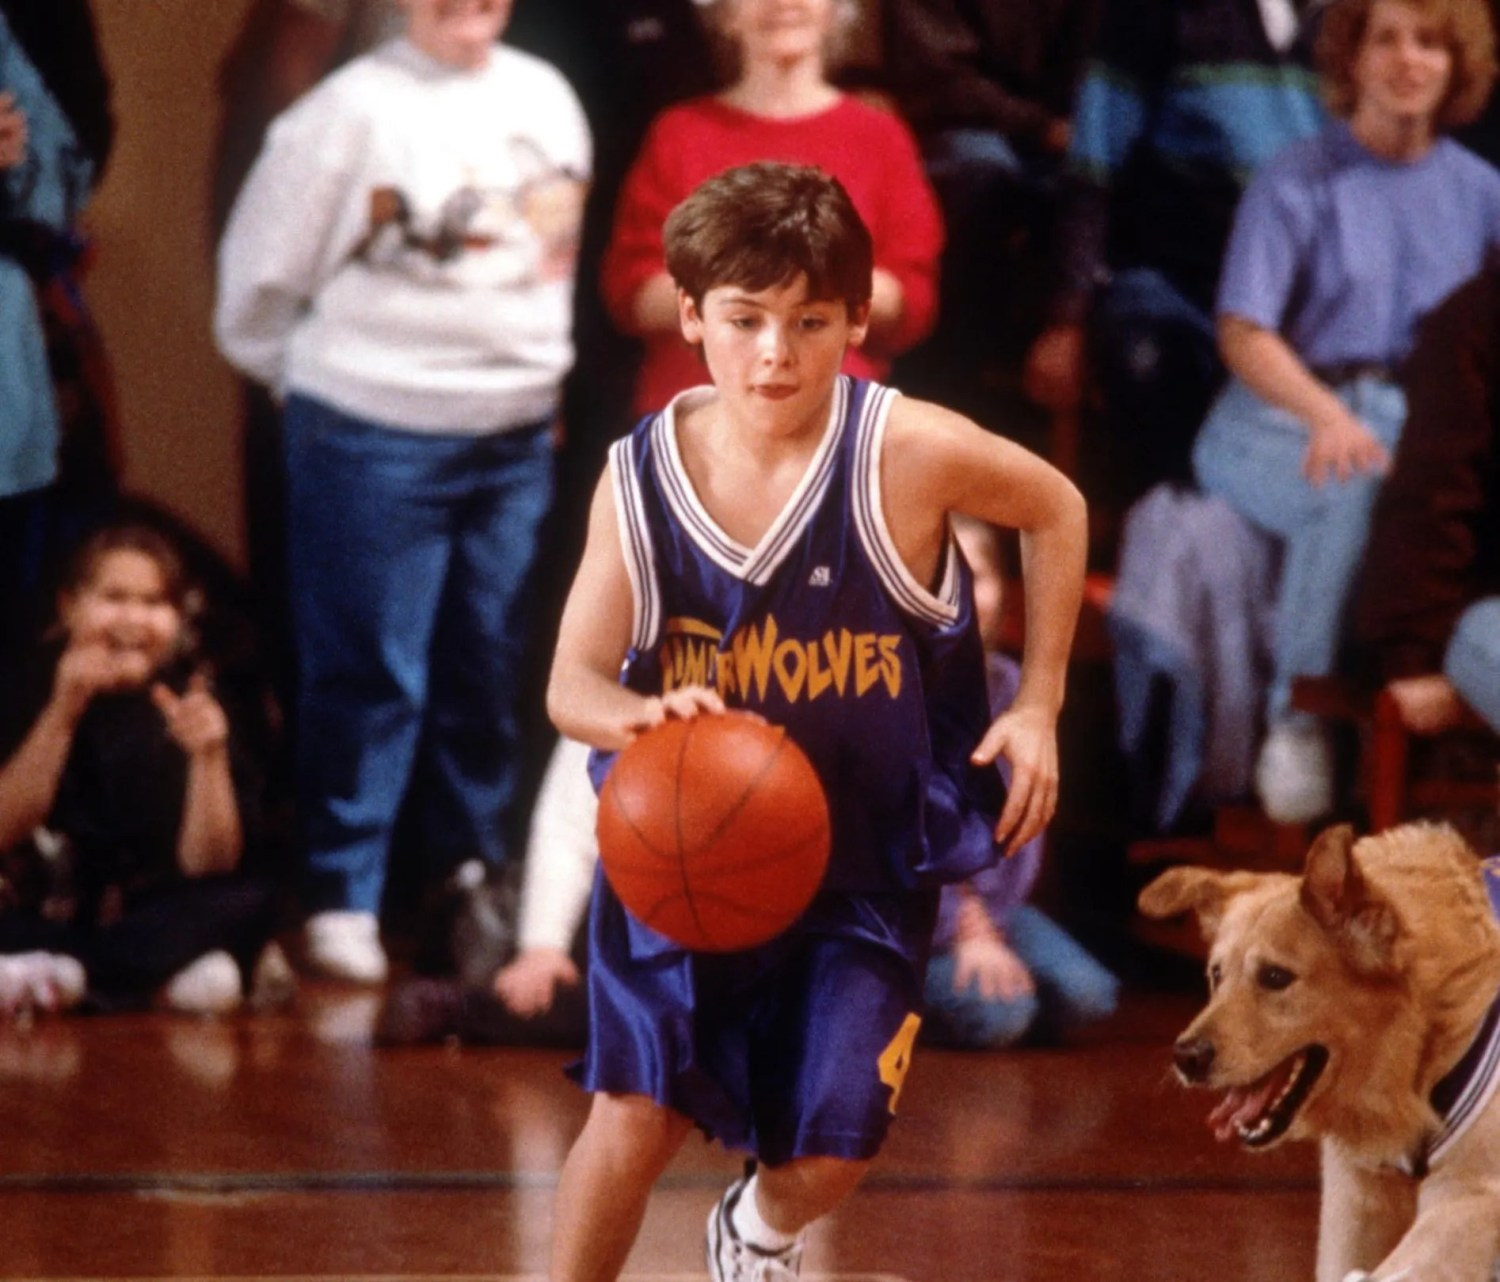 Buddy from Air Bud